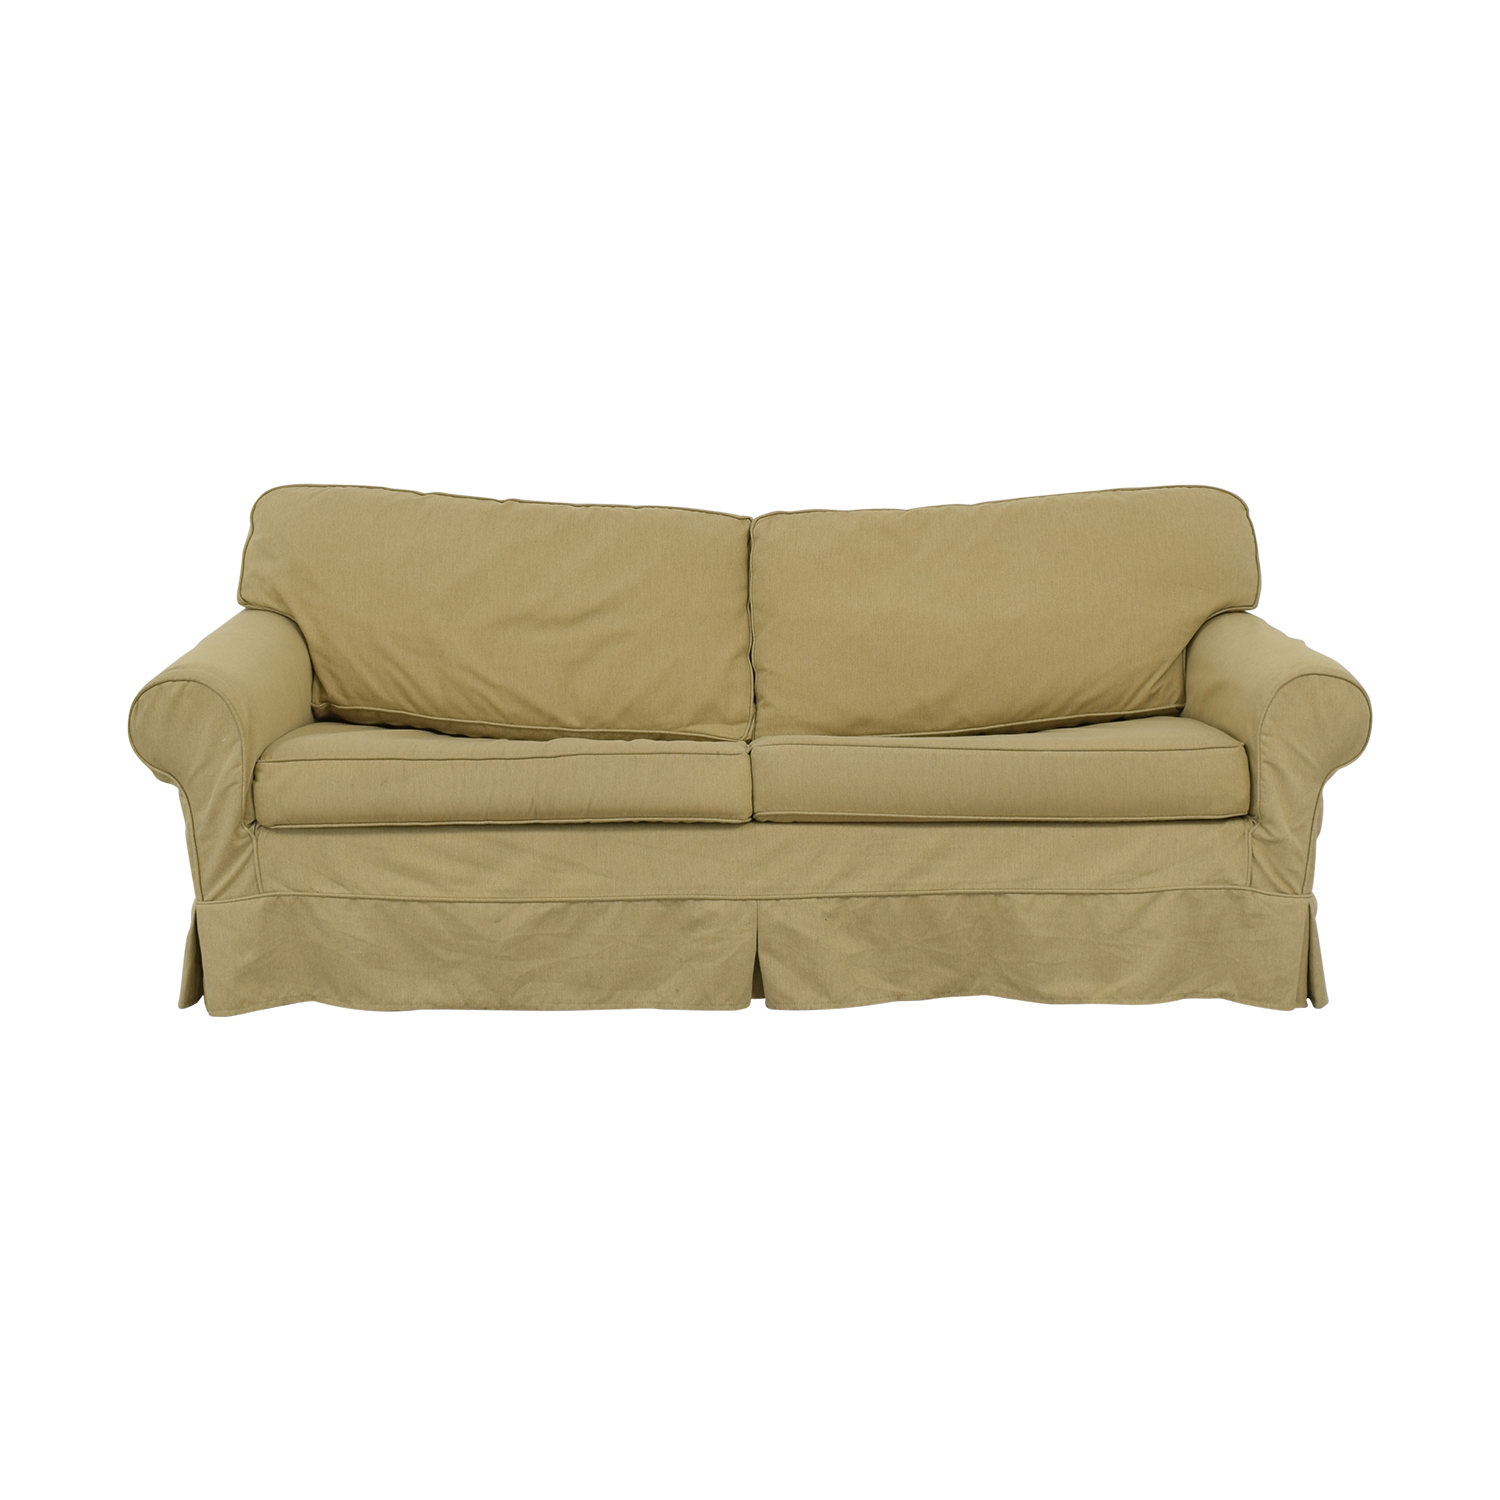 shop Mitchell Gold + Bob Williams Mitchell Gold + Bob Williams Sleeper Sofa online